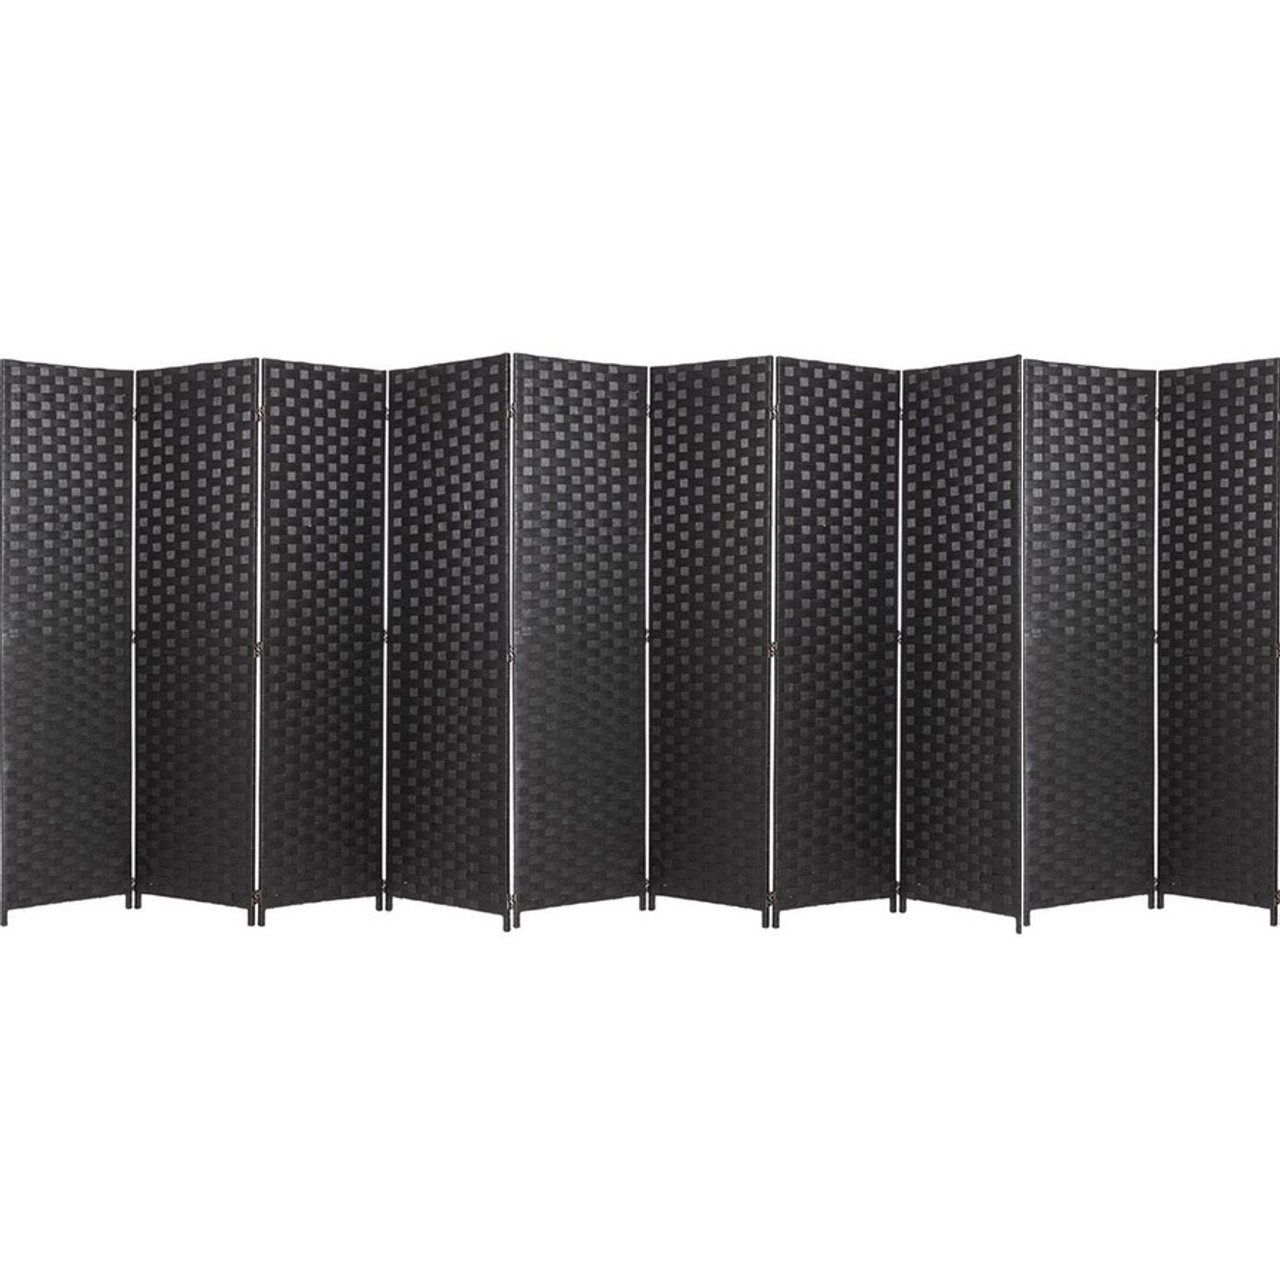 10 Panel Room Divider Privacy Screen, Bamboo Woven Panel